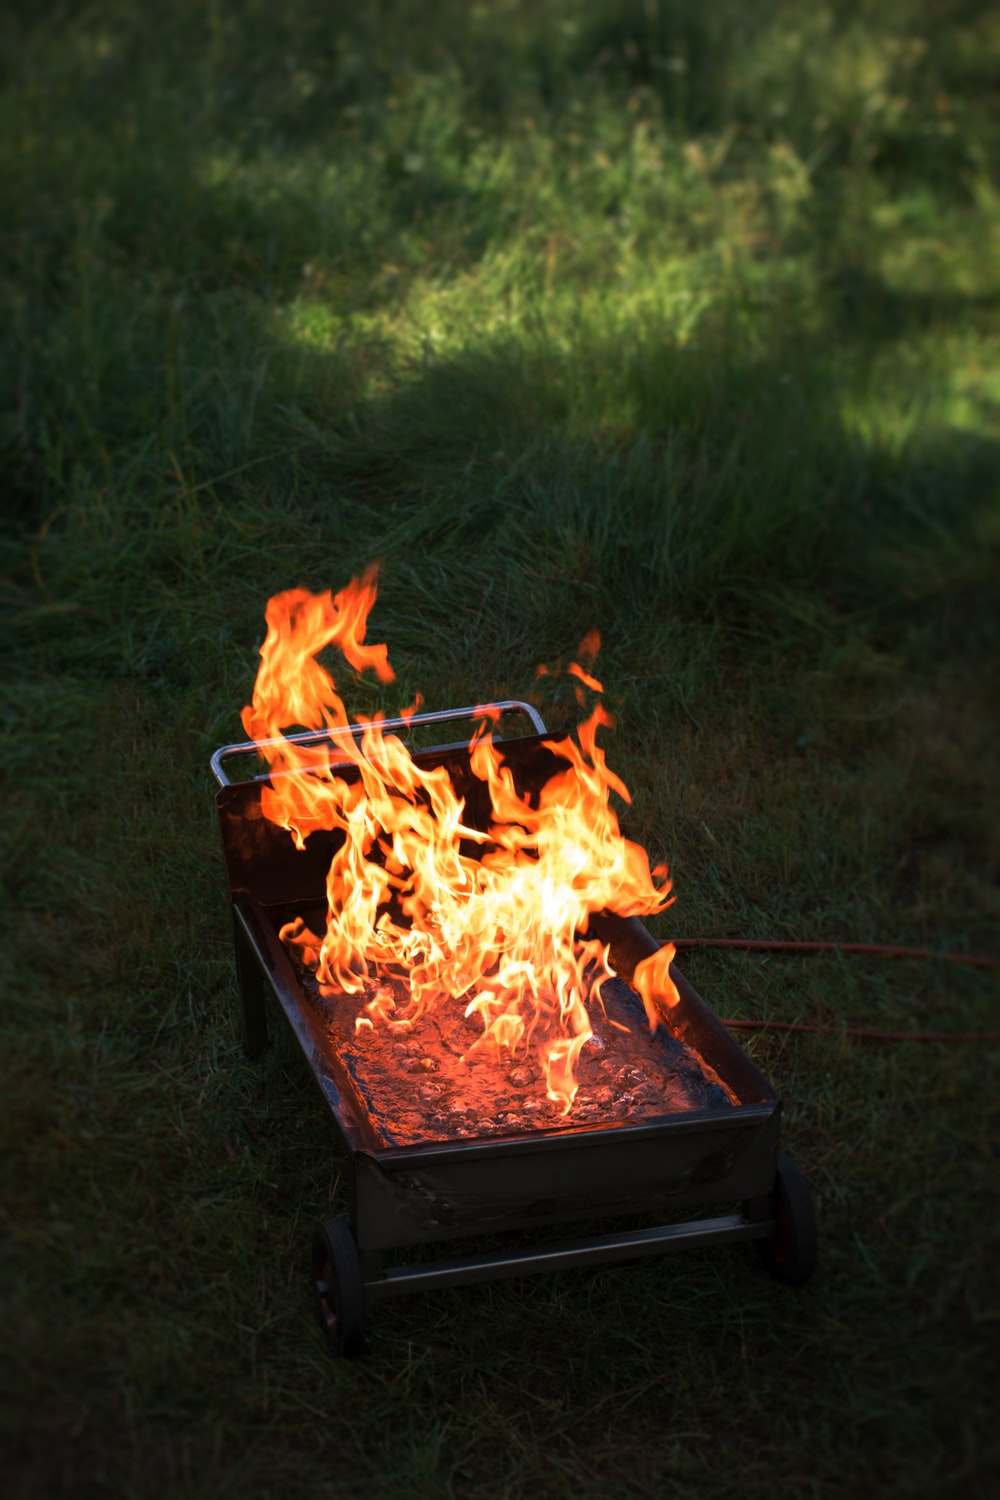 rectangular wheeled grill with fire on lawn during daytime